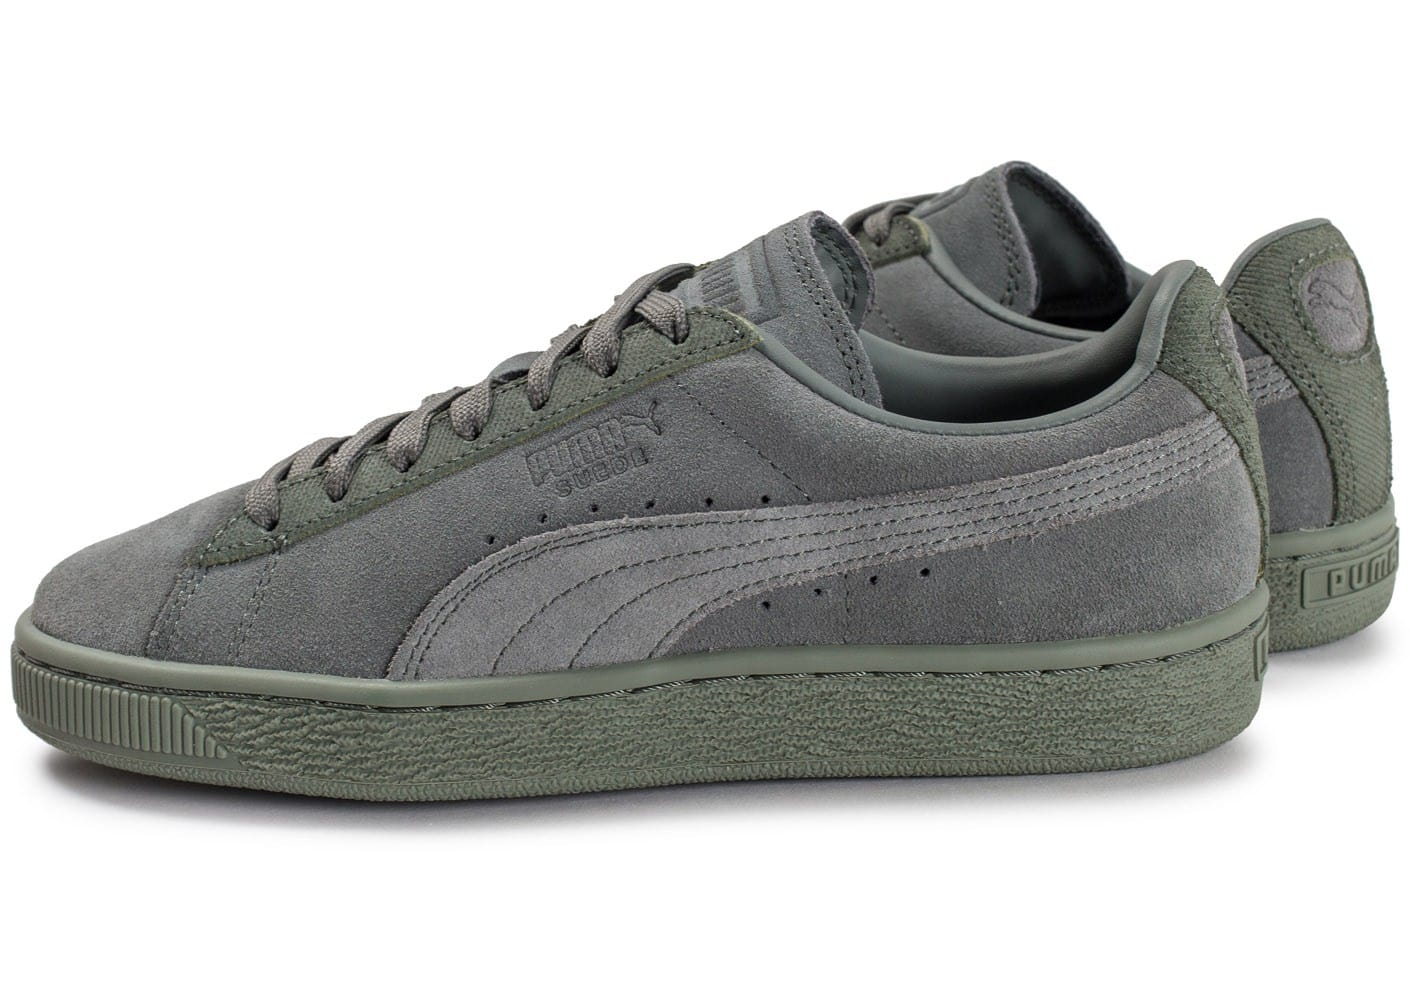 PUMA Sneakers Homme AGAVE GREEN, 46